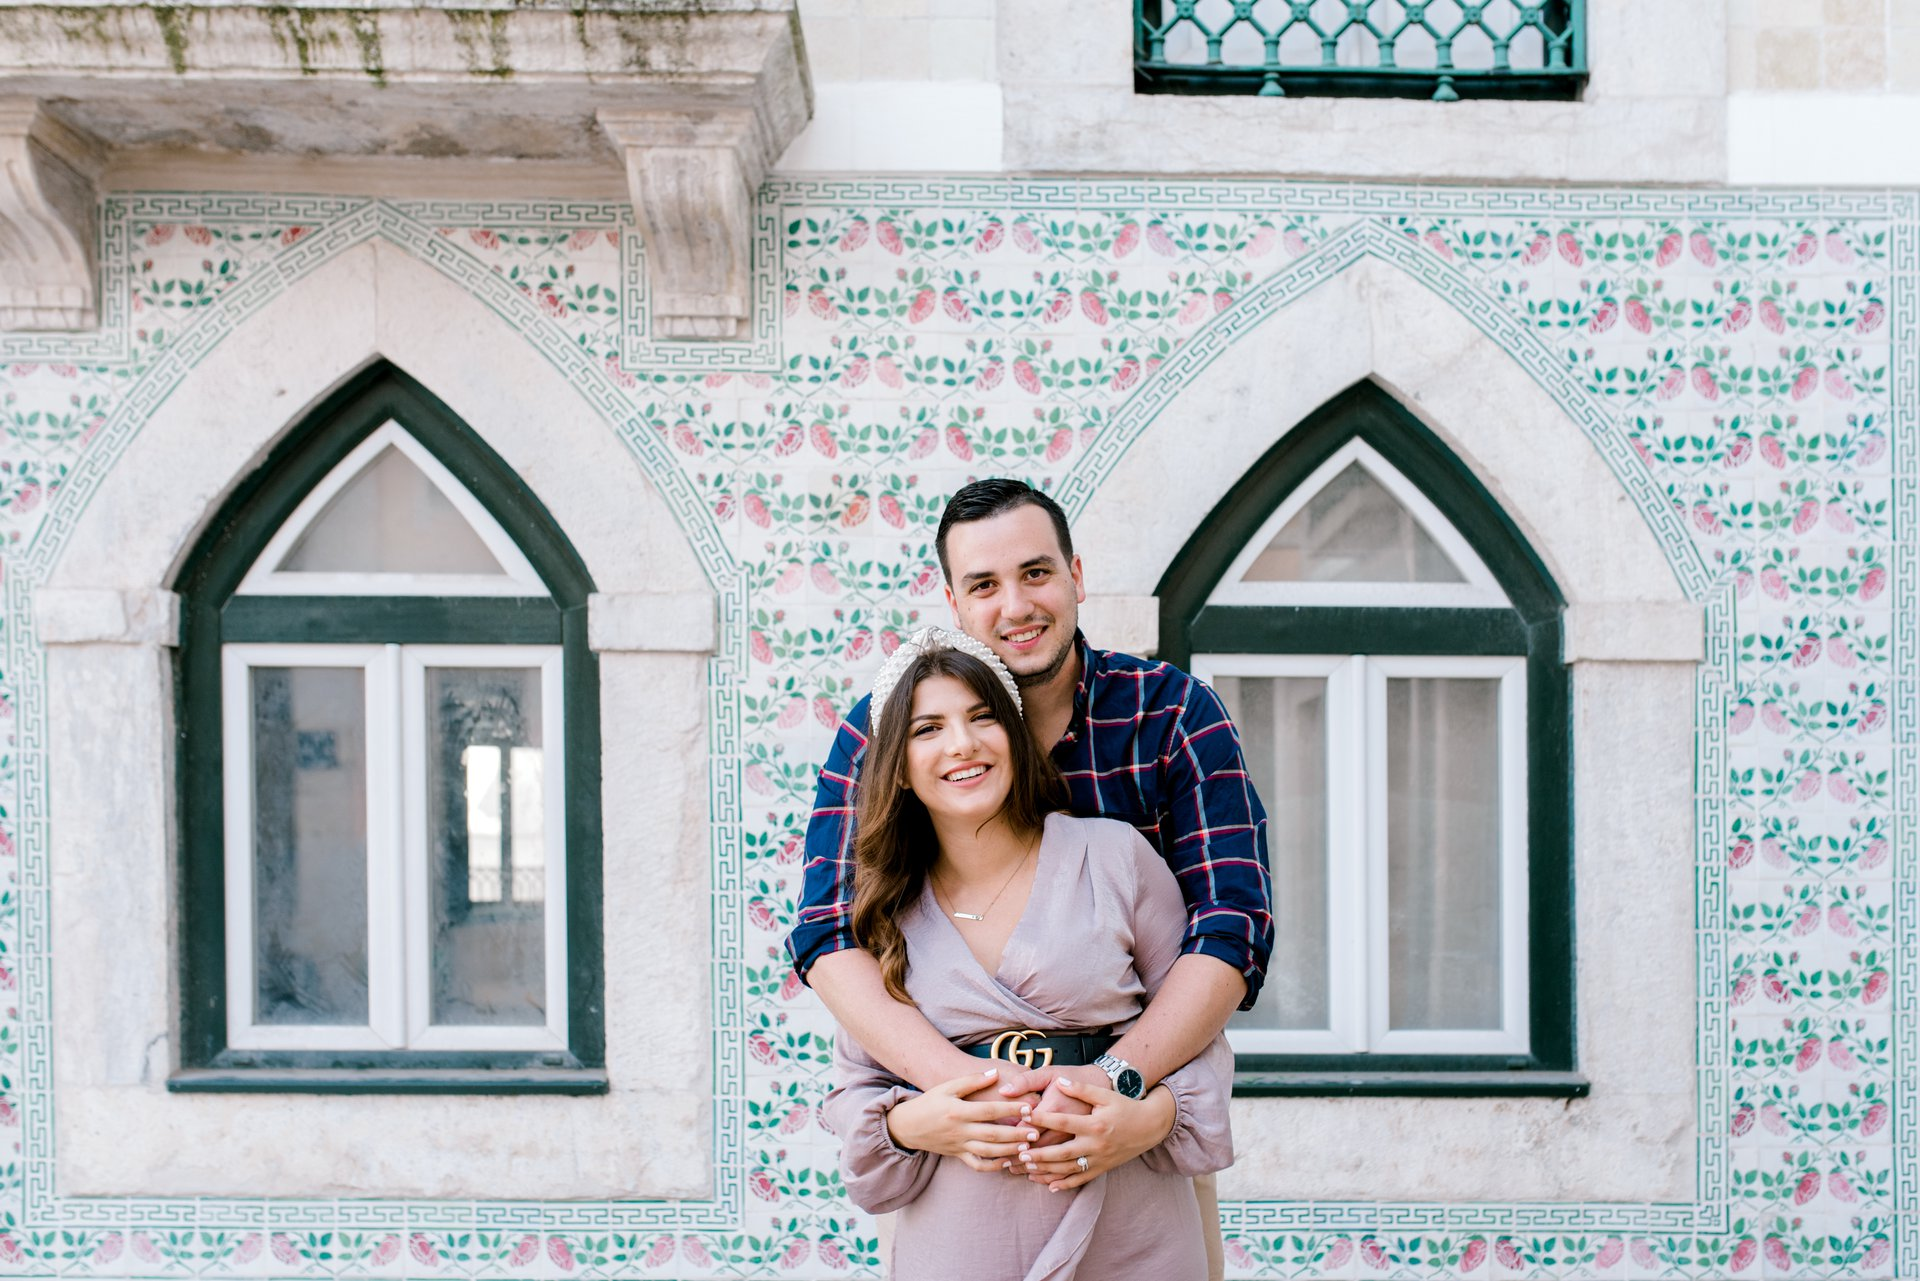 Flytographer Travel Story - Our Babymoon in Lisbon